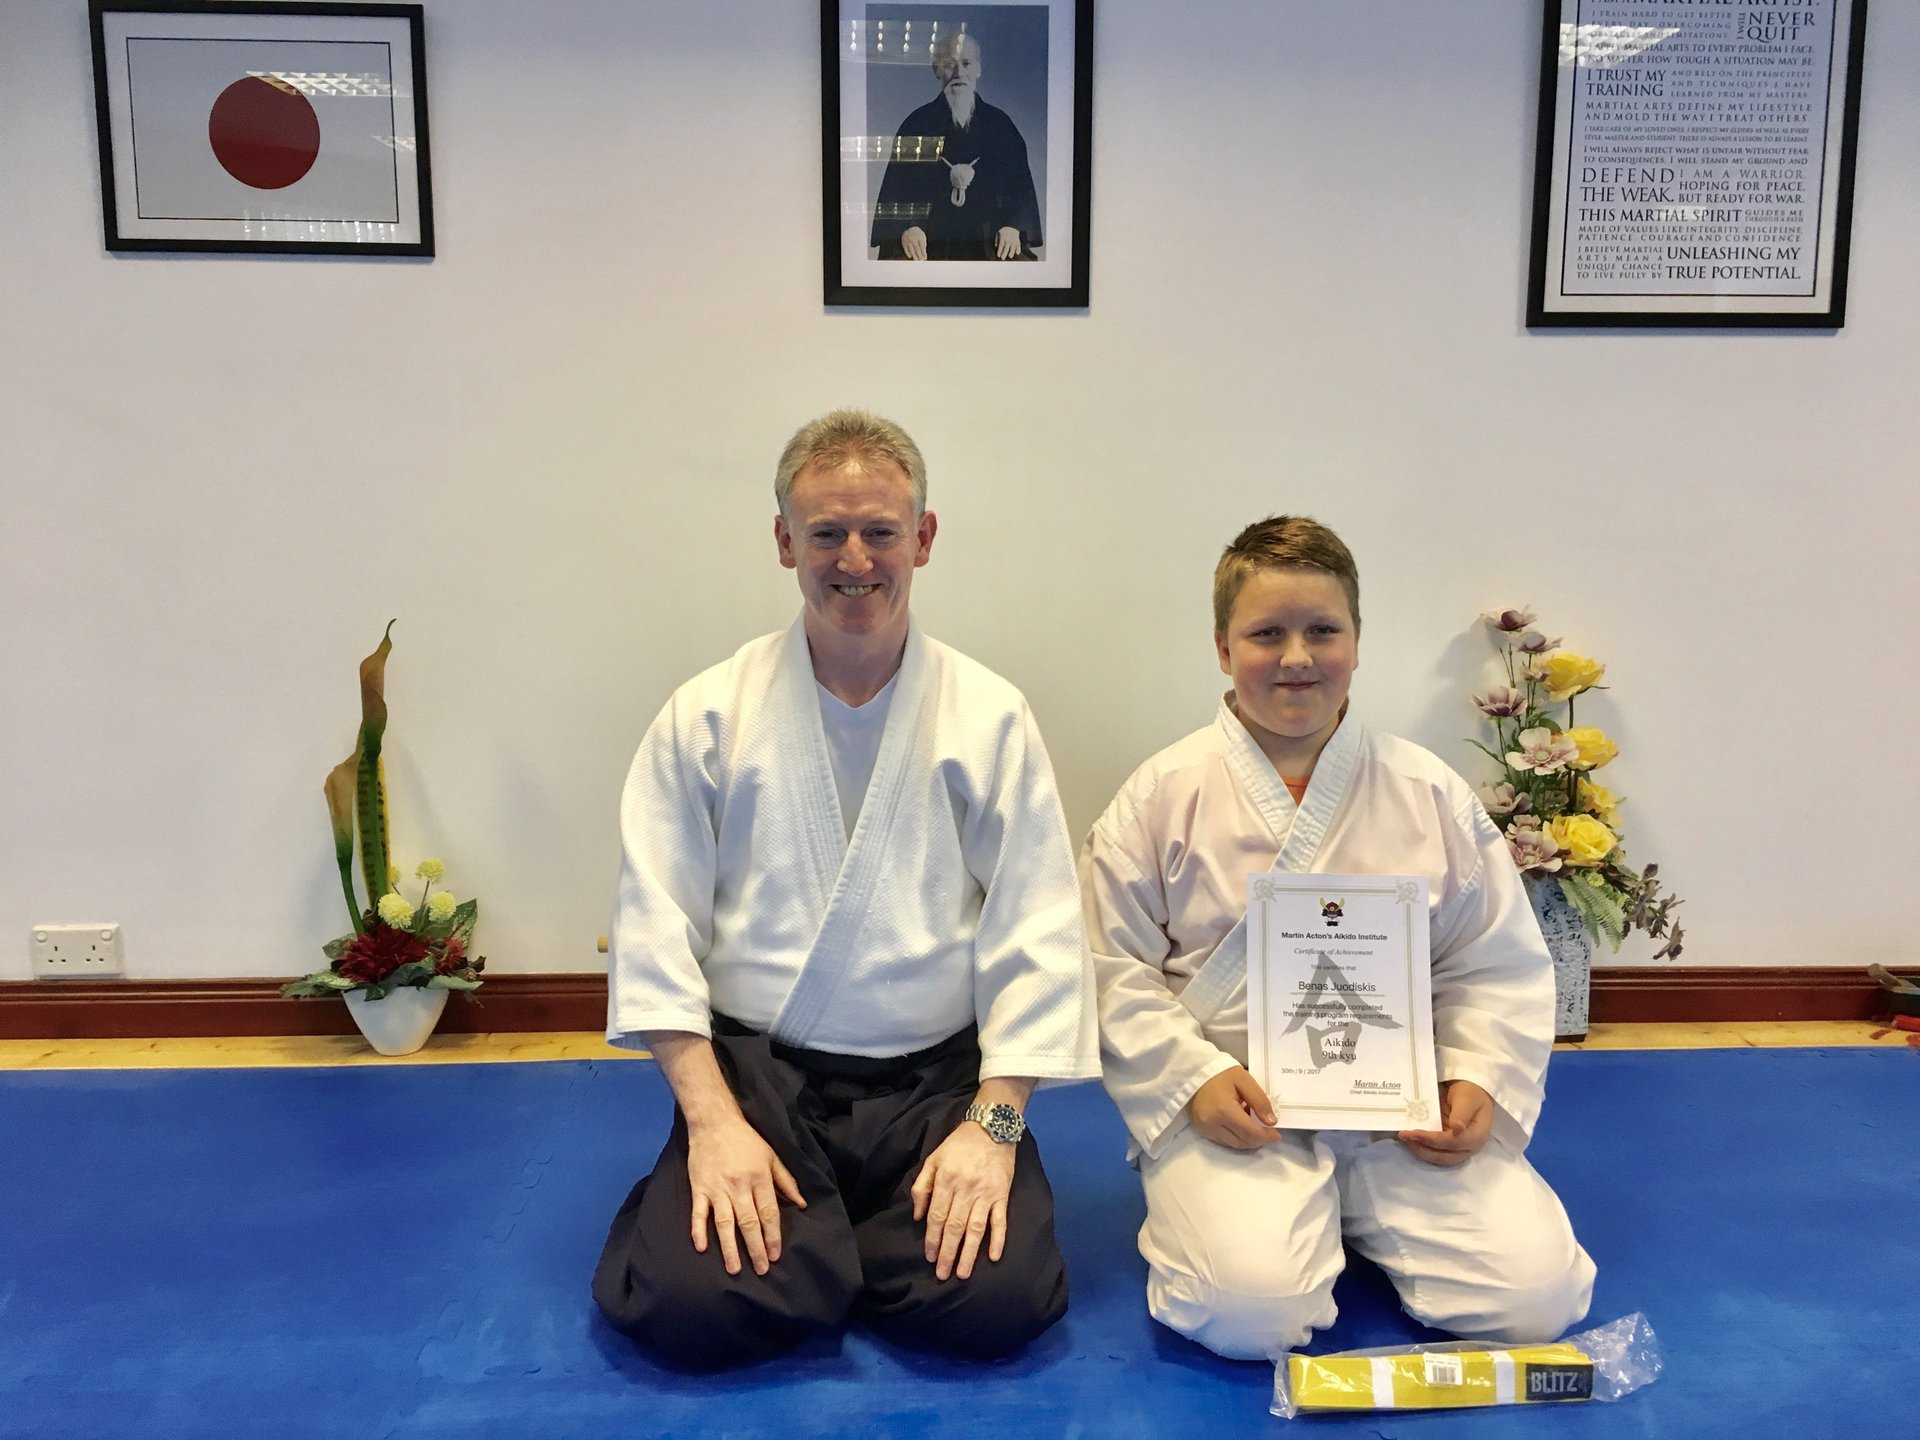 Aikido student  Benas Juodiskis receiving his 9th kyu Aikido certification with Martin Acton Sensei  on the  7th  October 2017 at martin Acton's Aikido Institute